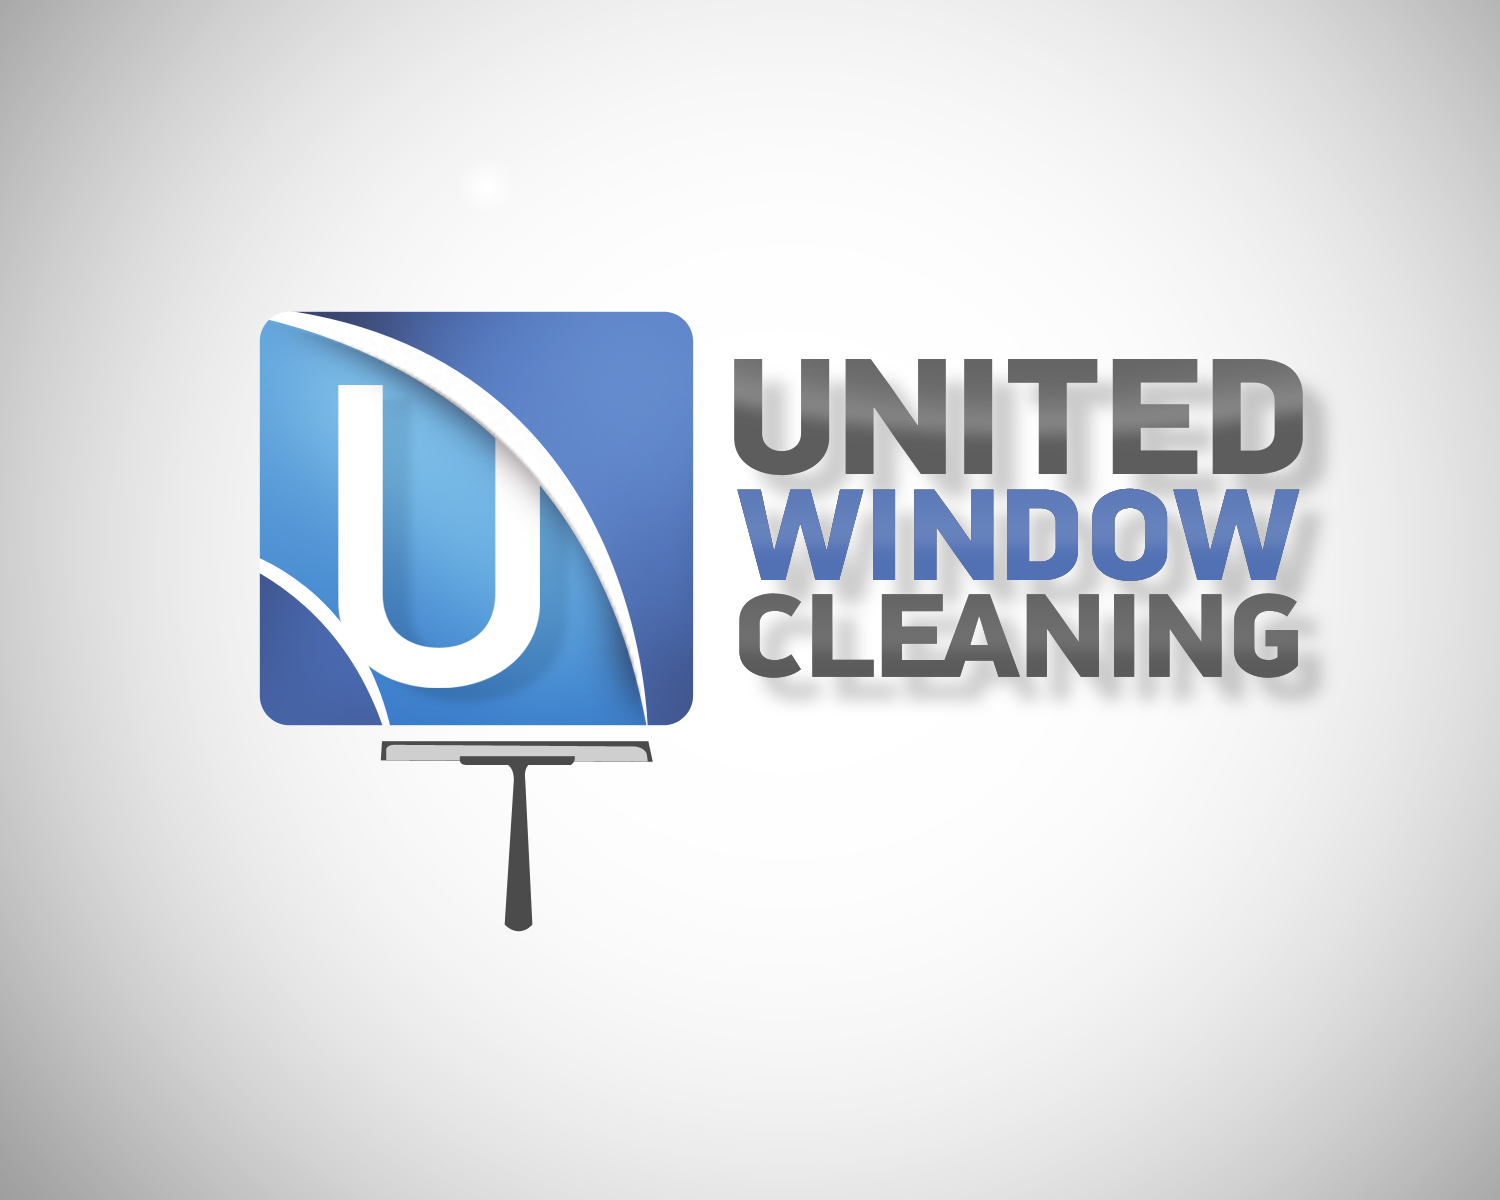 United Window Cleaning